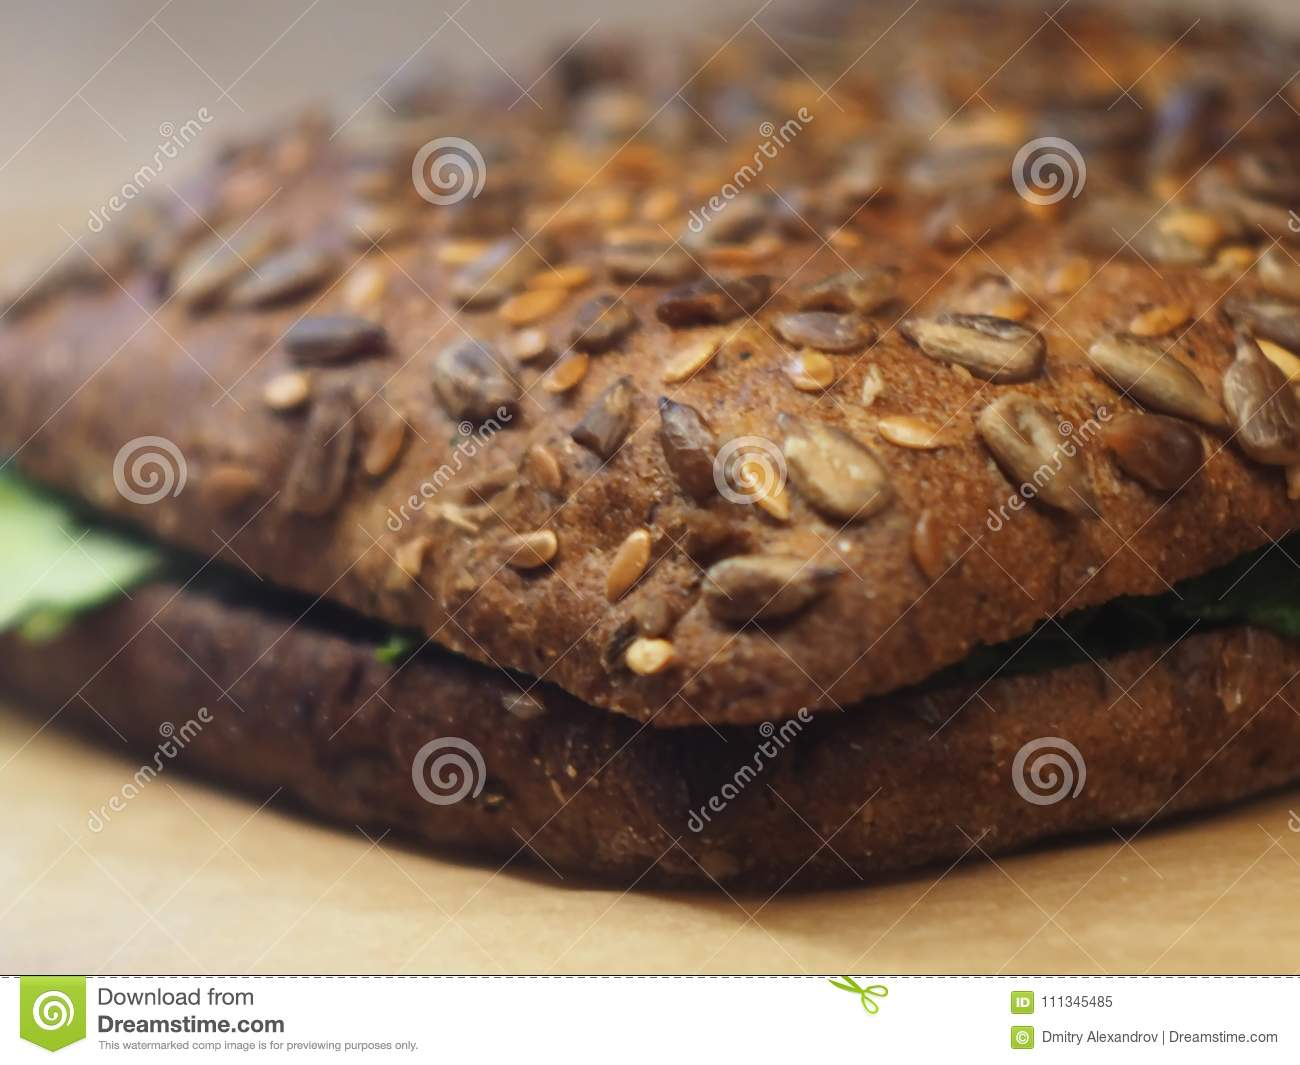 Healthy Lifestyle Fitness Food Useful Stock Image Image Of Seeds